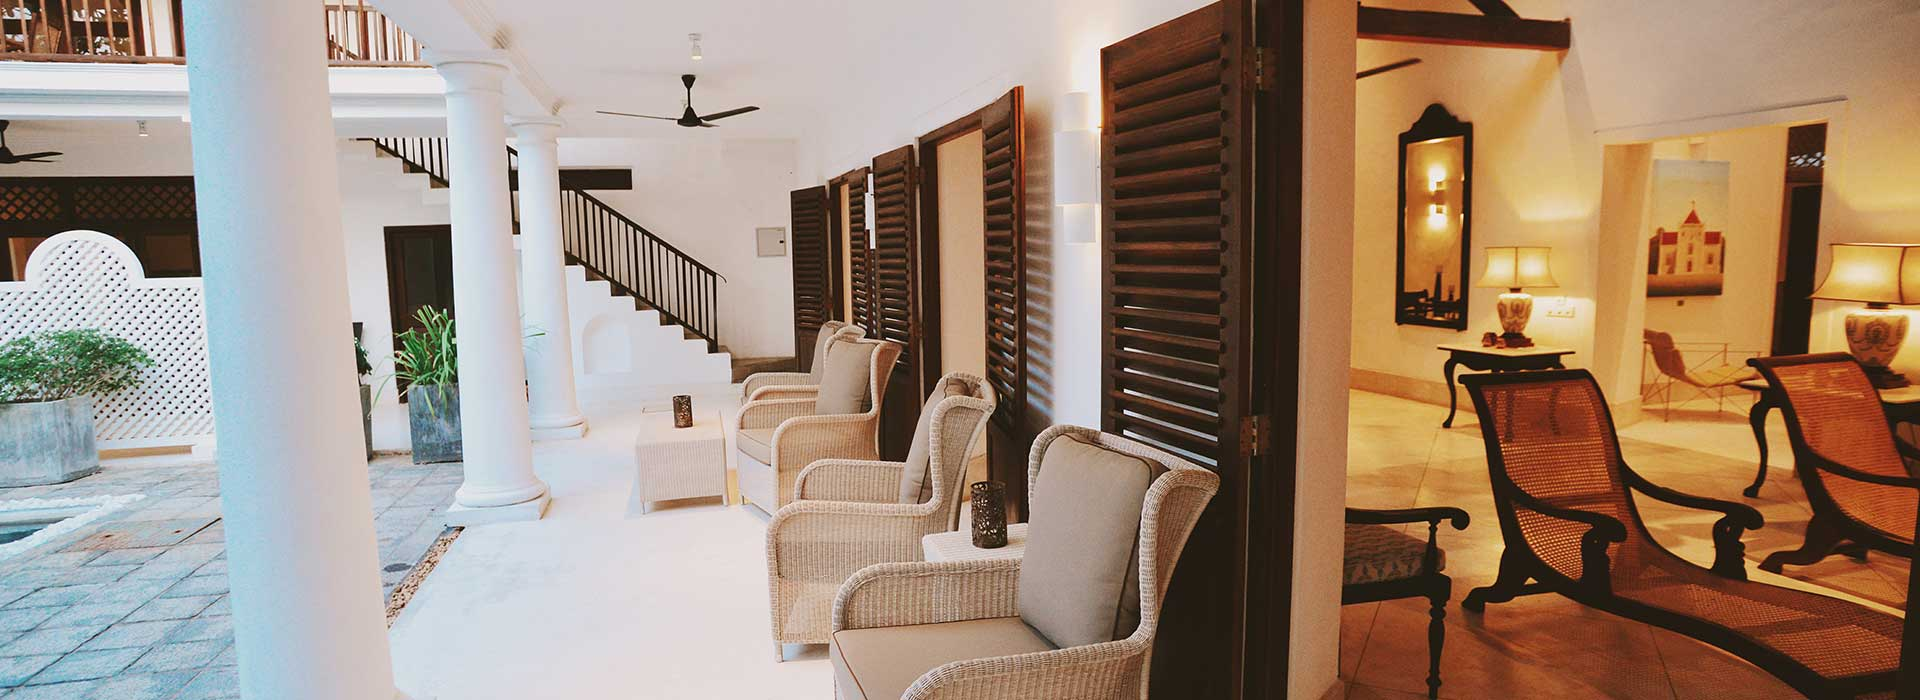 Staying at 32 Middle Street Luxury Boutique Hotel in Galle Fort